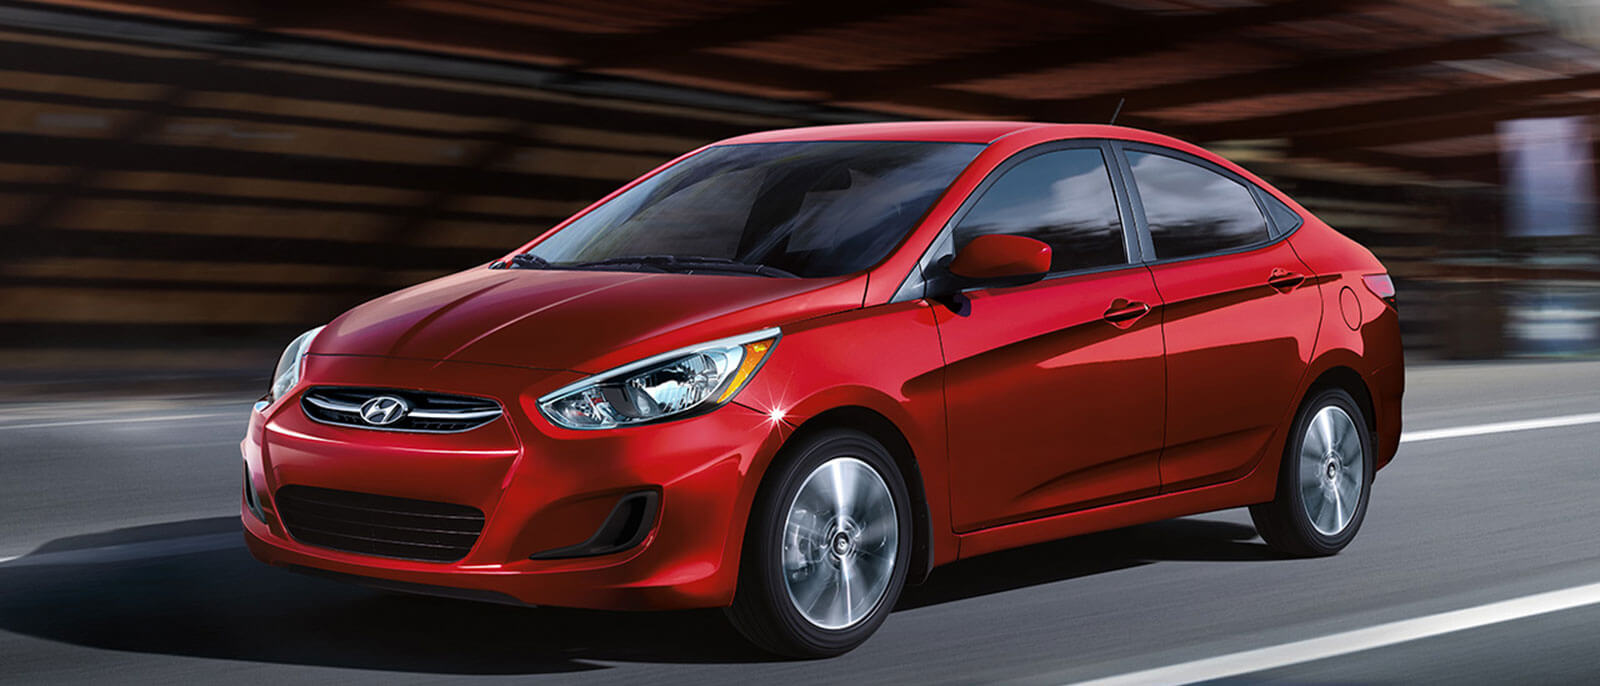 2017 Hyundai Accent in red driving through the city